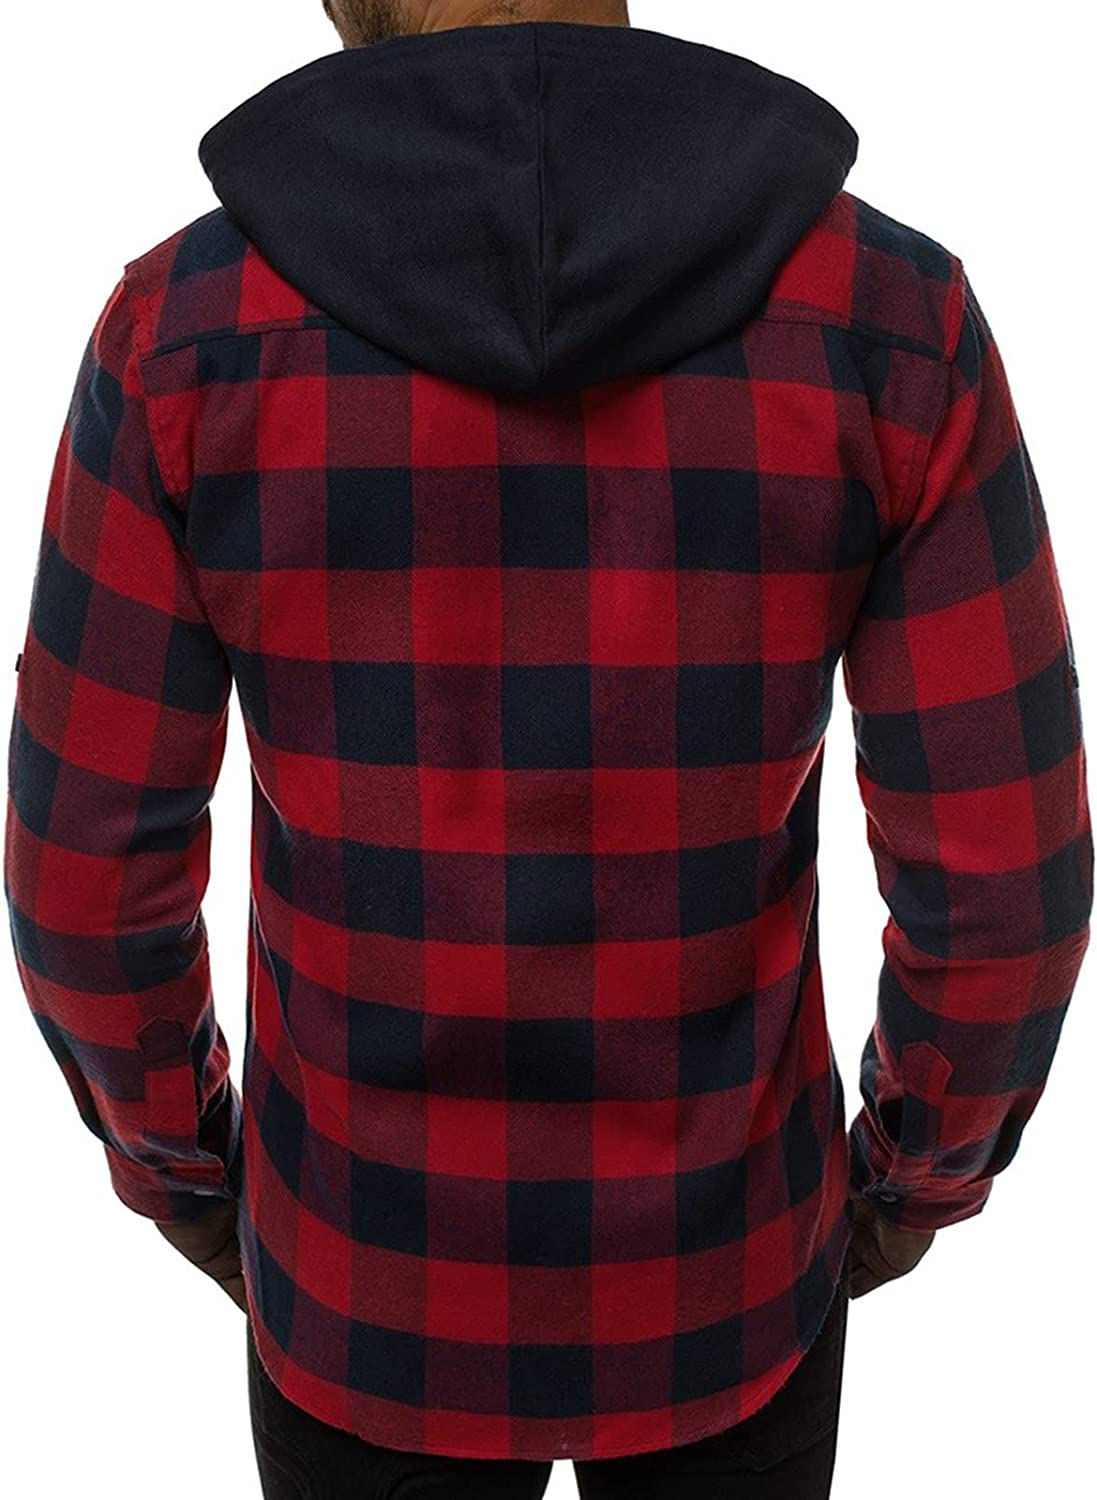 Mens Fashion Button Down Flannel Shirts Hoodies Long Sleeve Plaid Removable Hooded Sweatshirts Jackets with Pockets